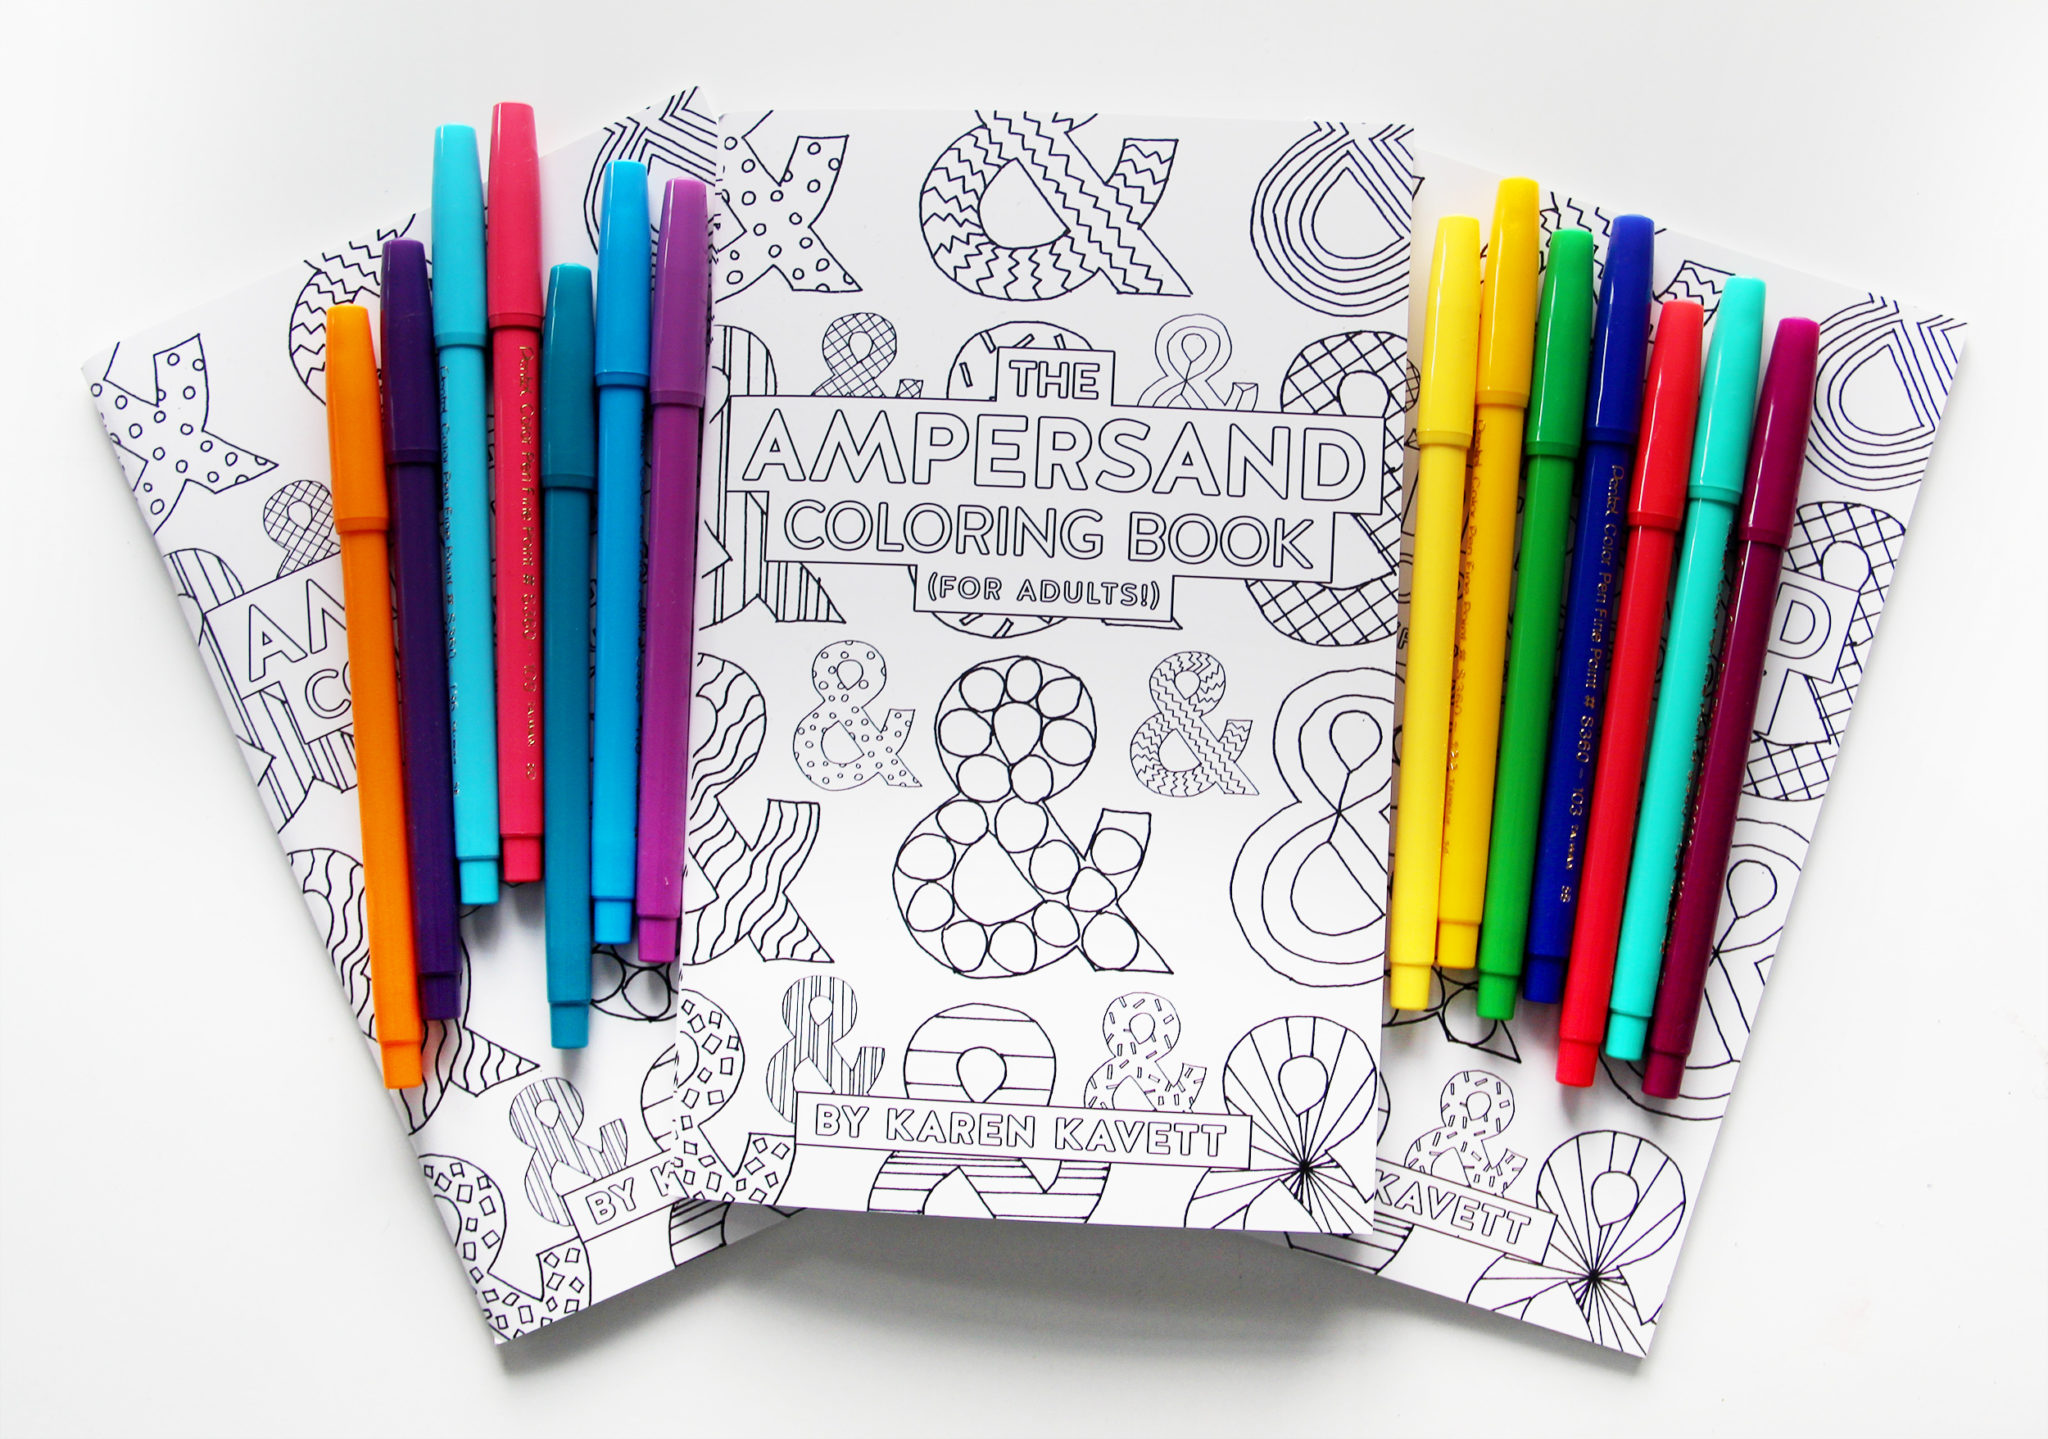 New Bookmarks For Sale on DFTBA + The Ampersand Coloring Book ...